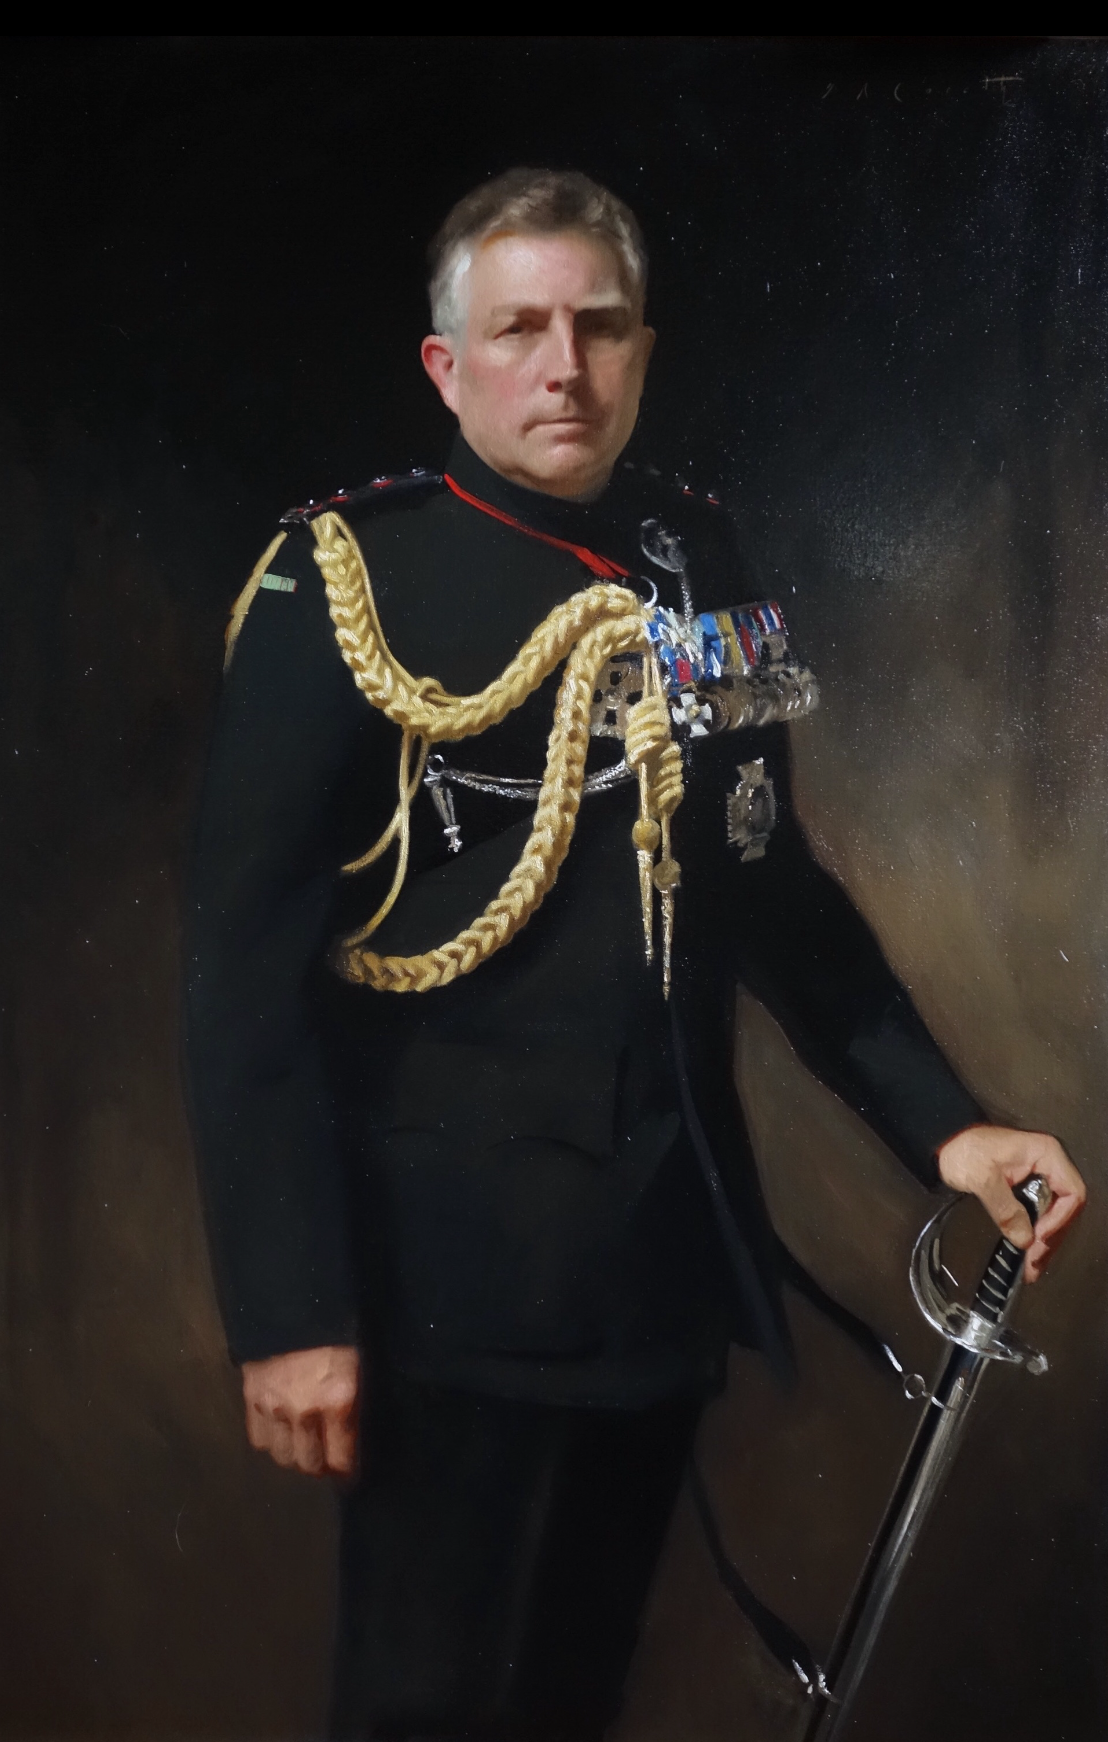 Portrait of General Sir Nick Carter, Chief of the Defence Staff and Col Commandant of the Rifles